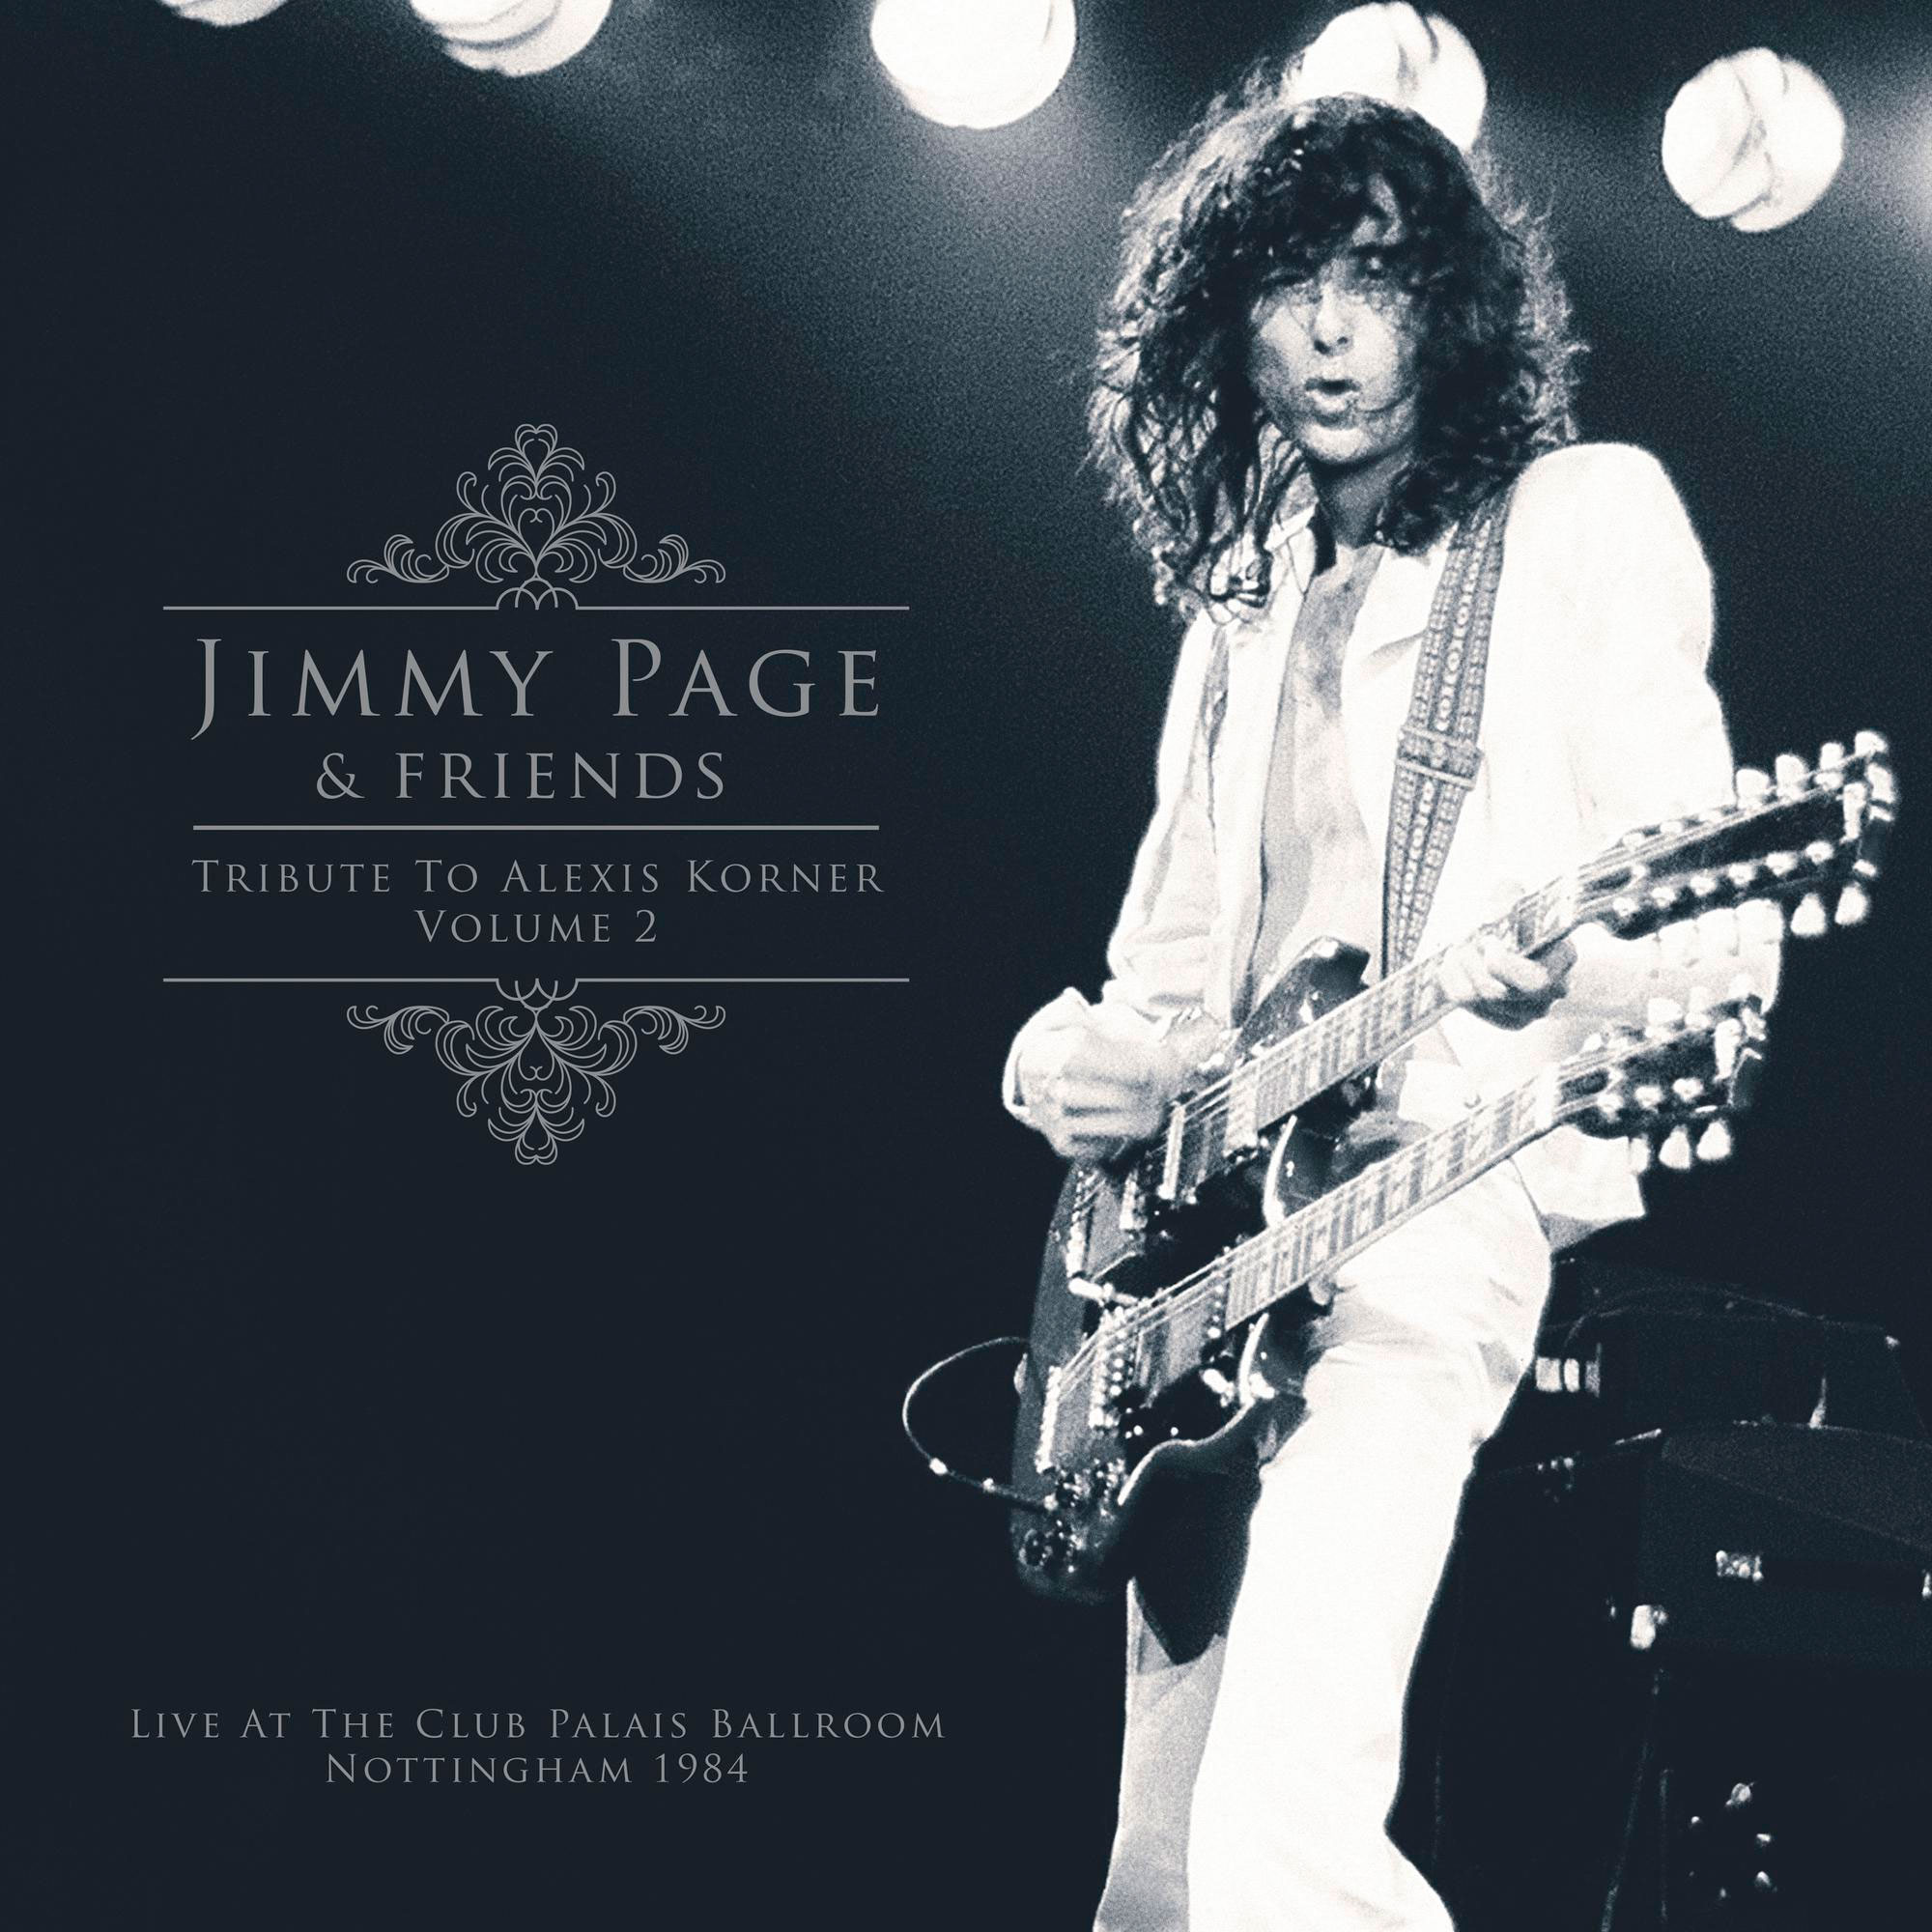 Jimmy Page & Friends Tribute To Alexis Korner Volume 2 2LP